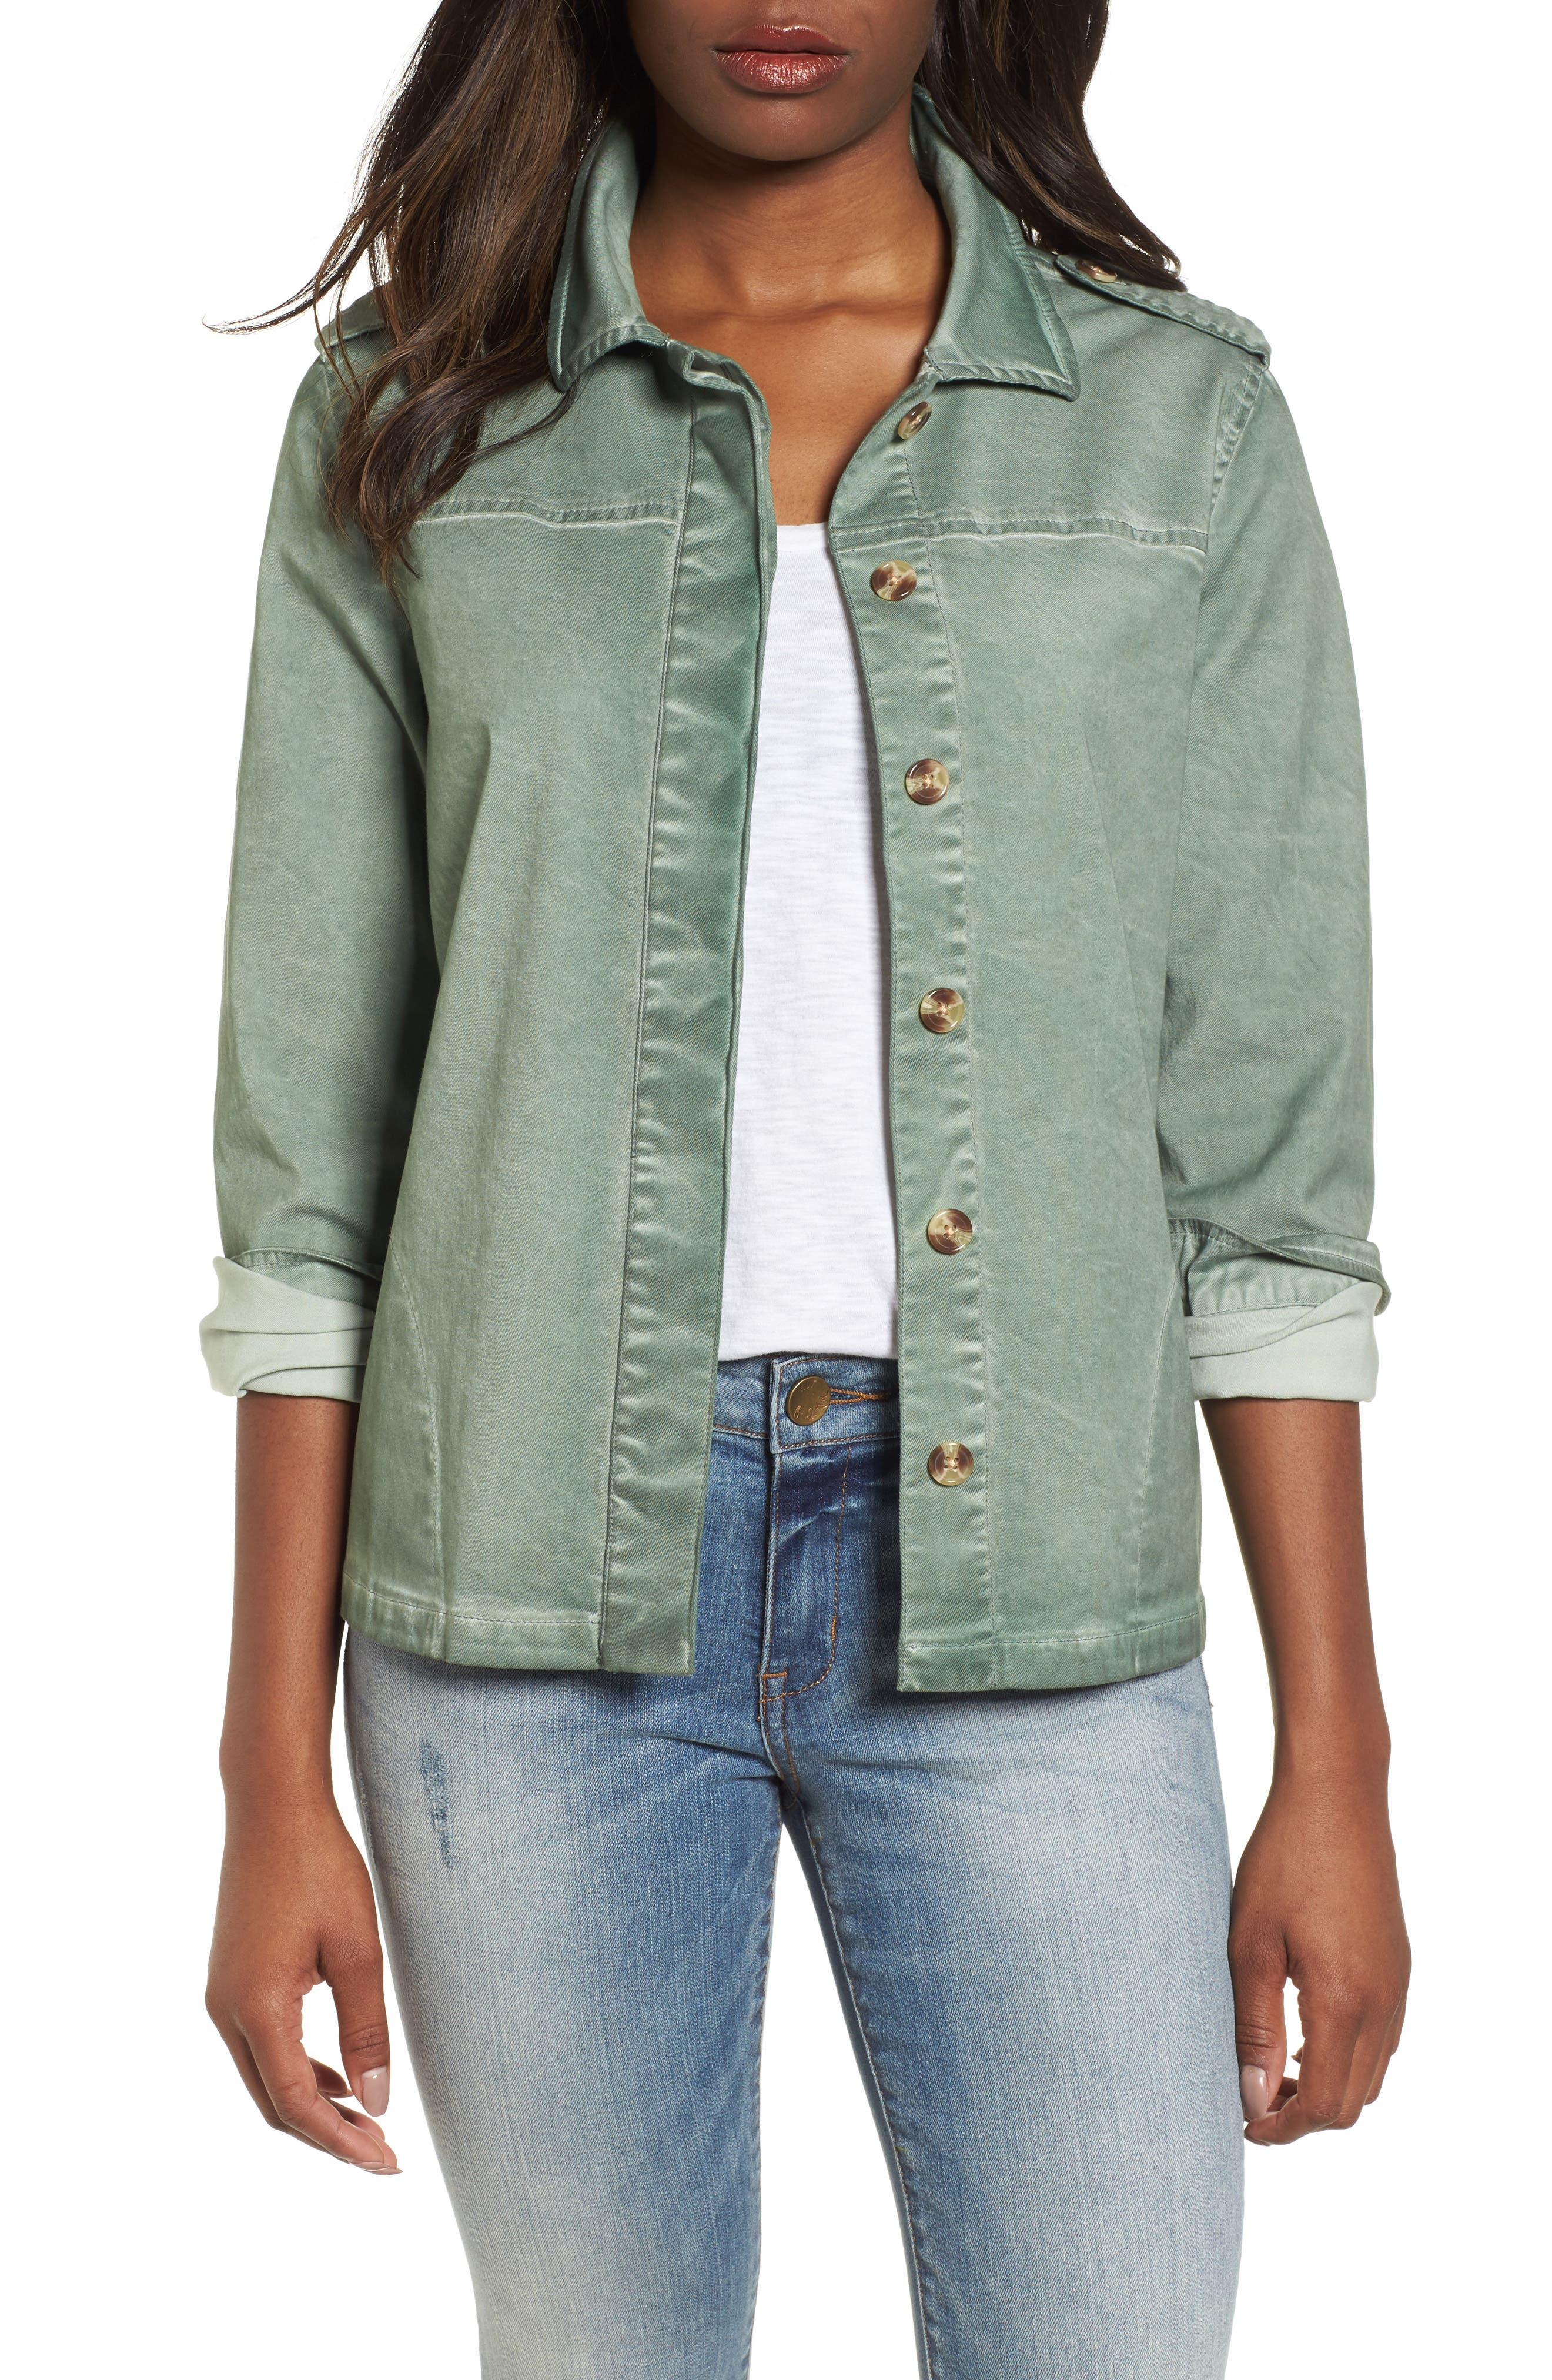 Shoulder Tab Button Up Jacket,                             Main thumbnail 1, color,                             330